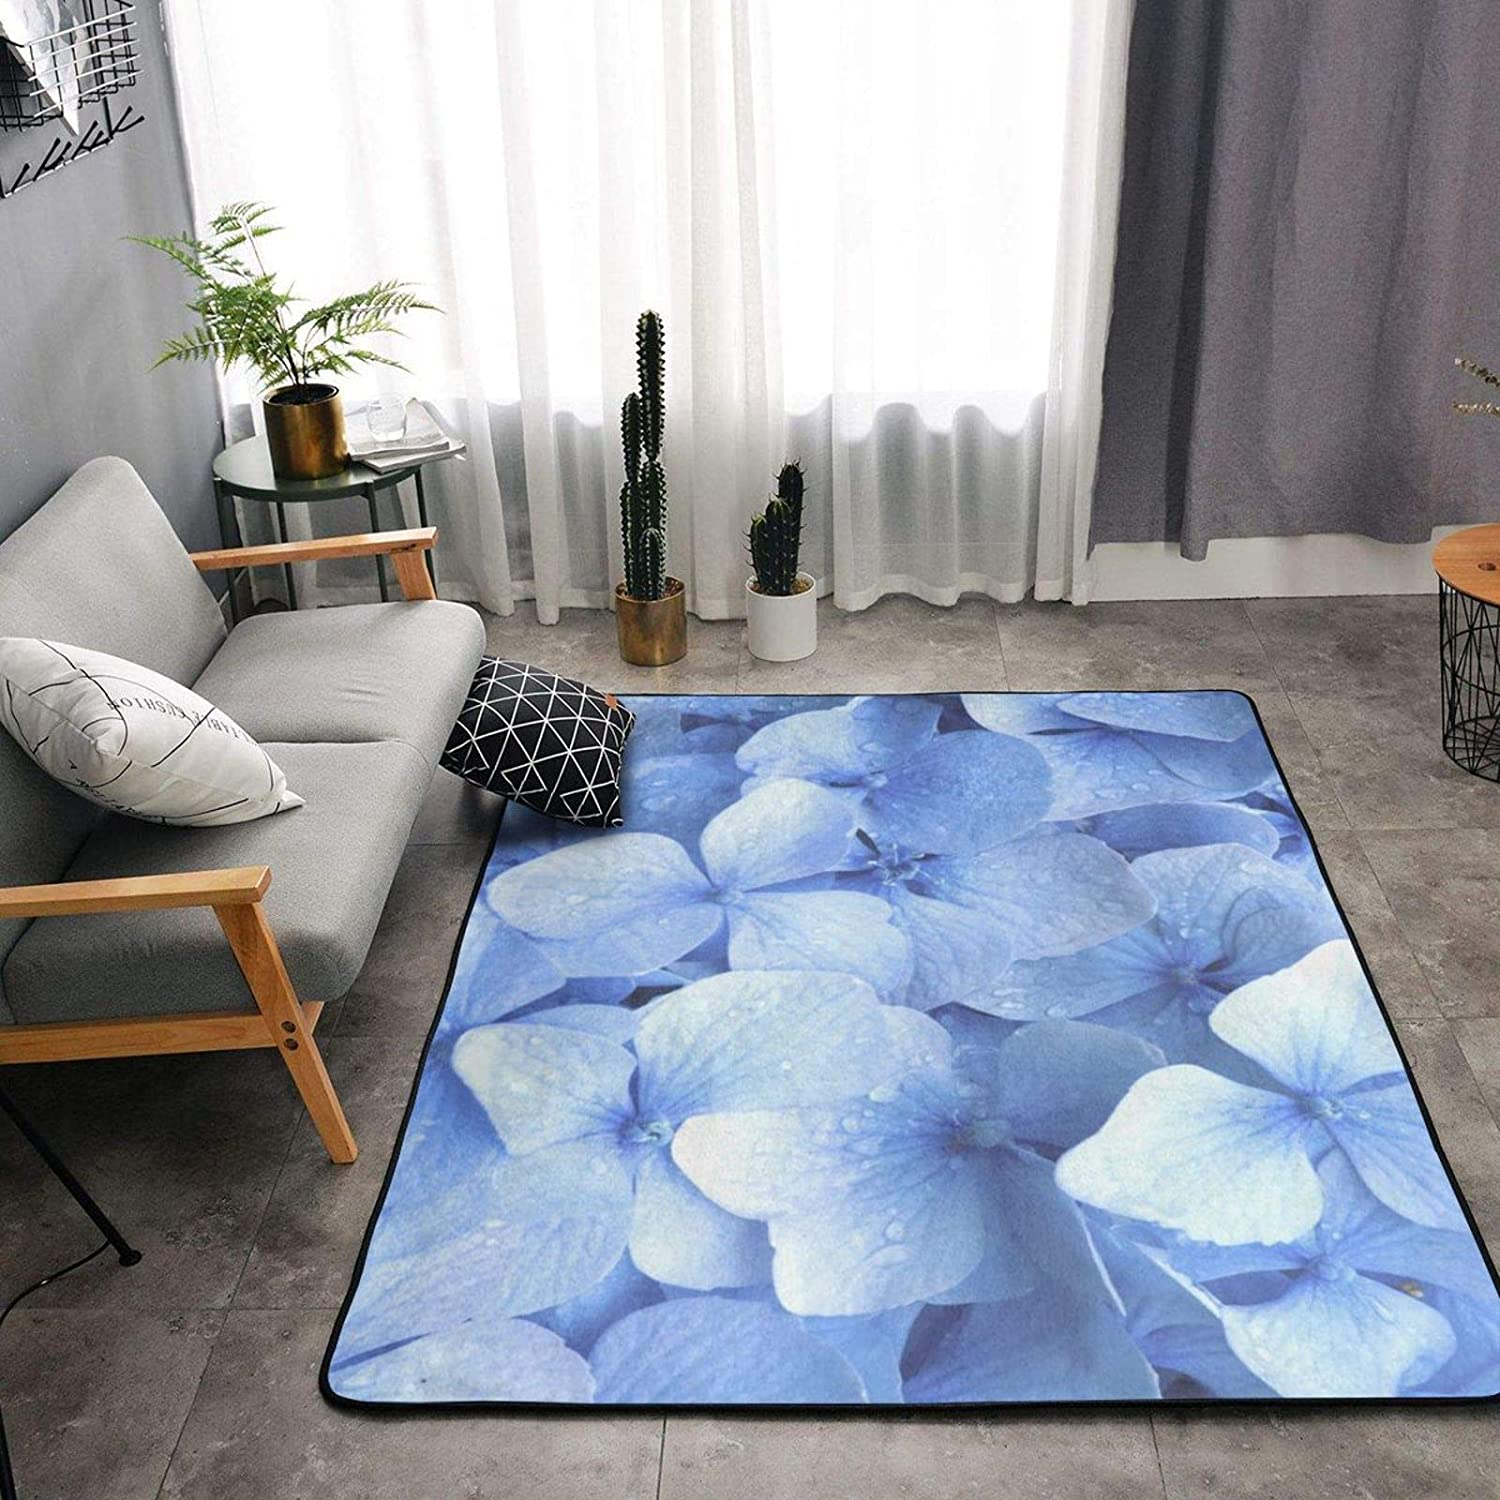 Area Rugs Pads Carpets Washable Soft Indoor Modern Area Rug for Bedrooms, Living Rooms, Dining Rooms, Kids Playing Mat Home Decor Rug, Blue Hydrangea